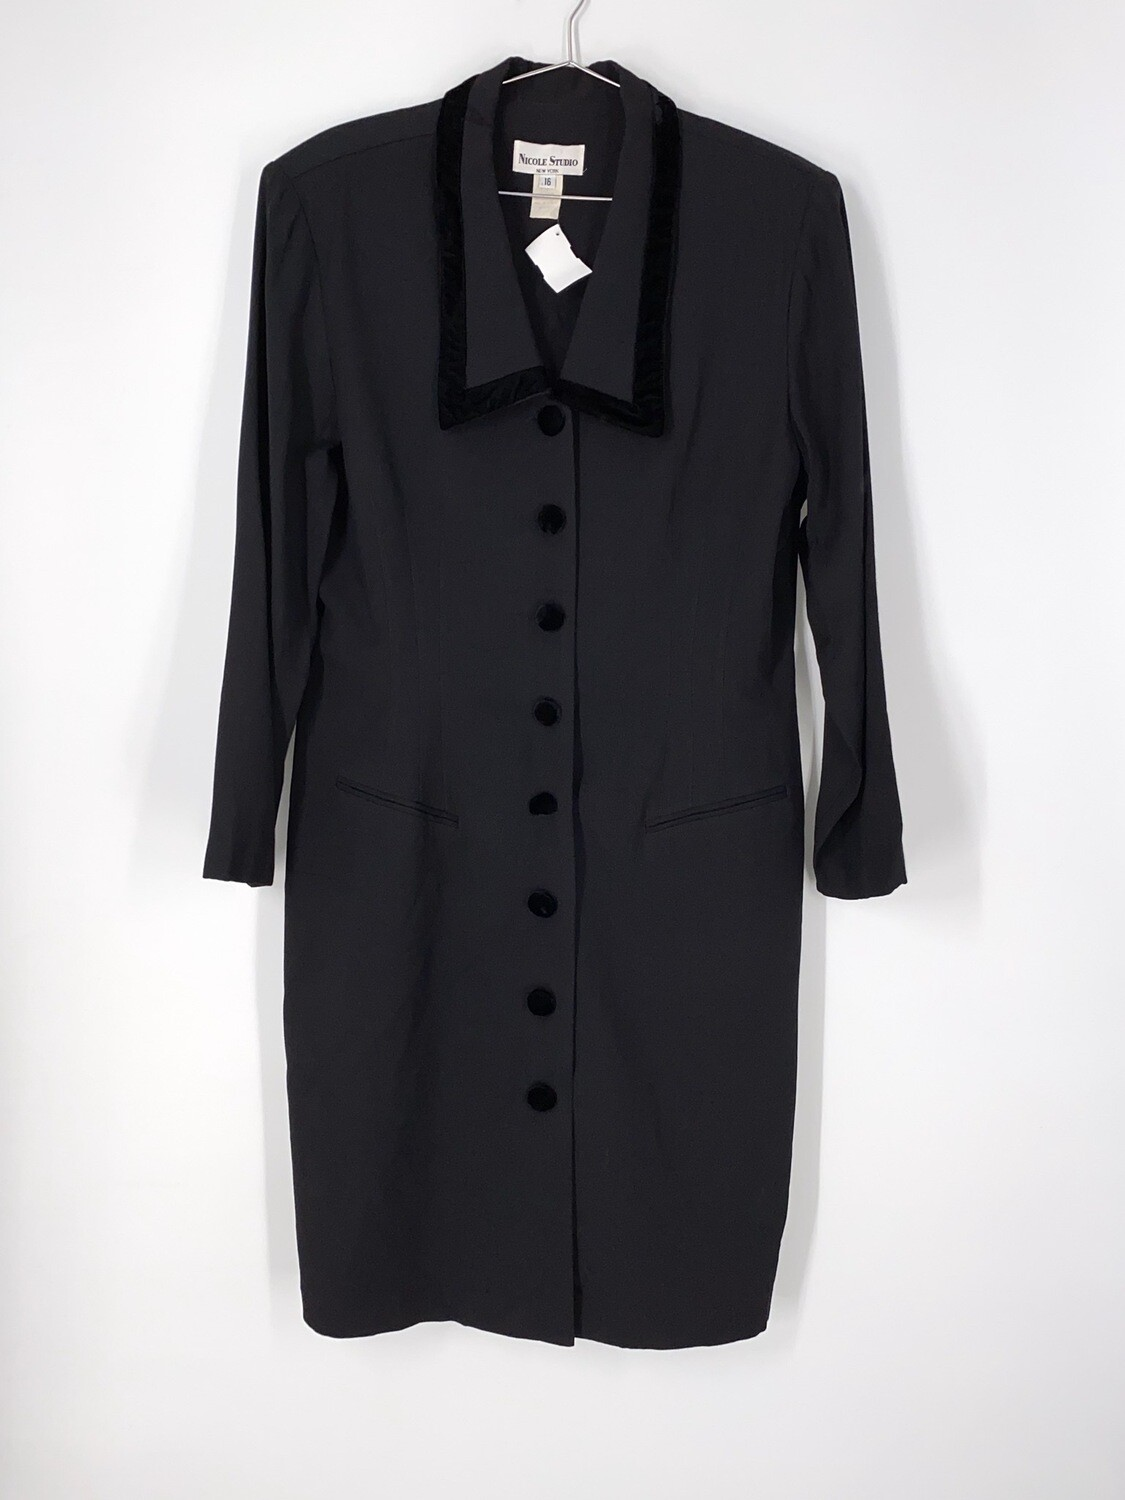 Velvet Detail Black Coat Dress Size L